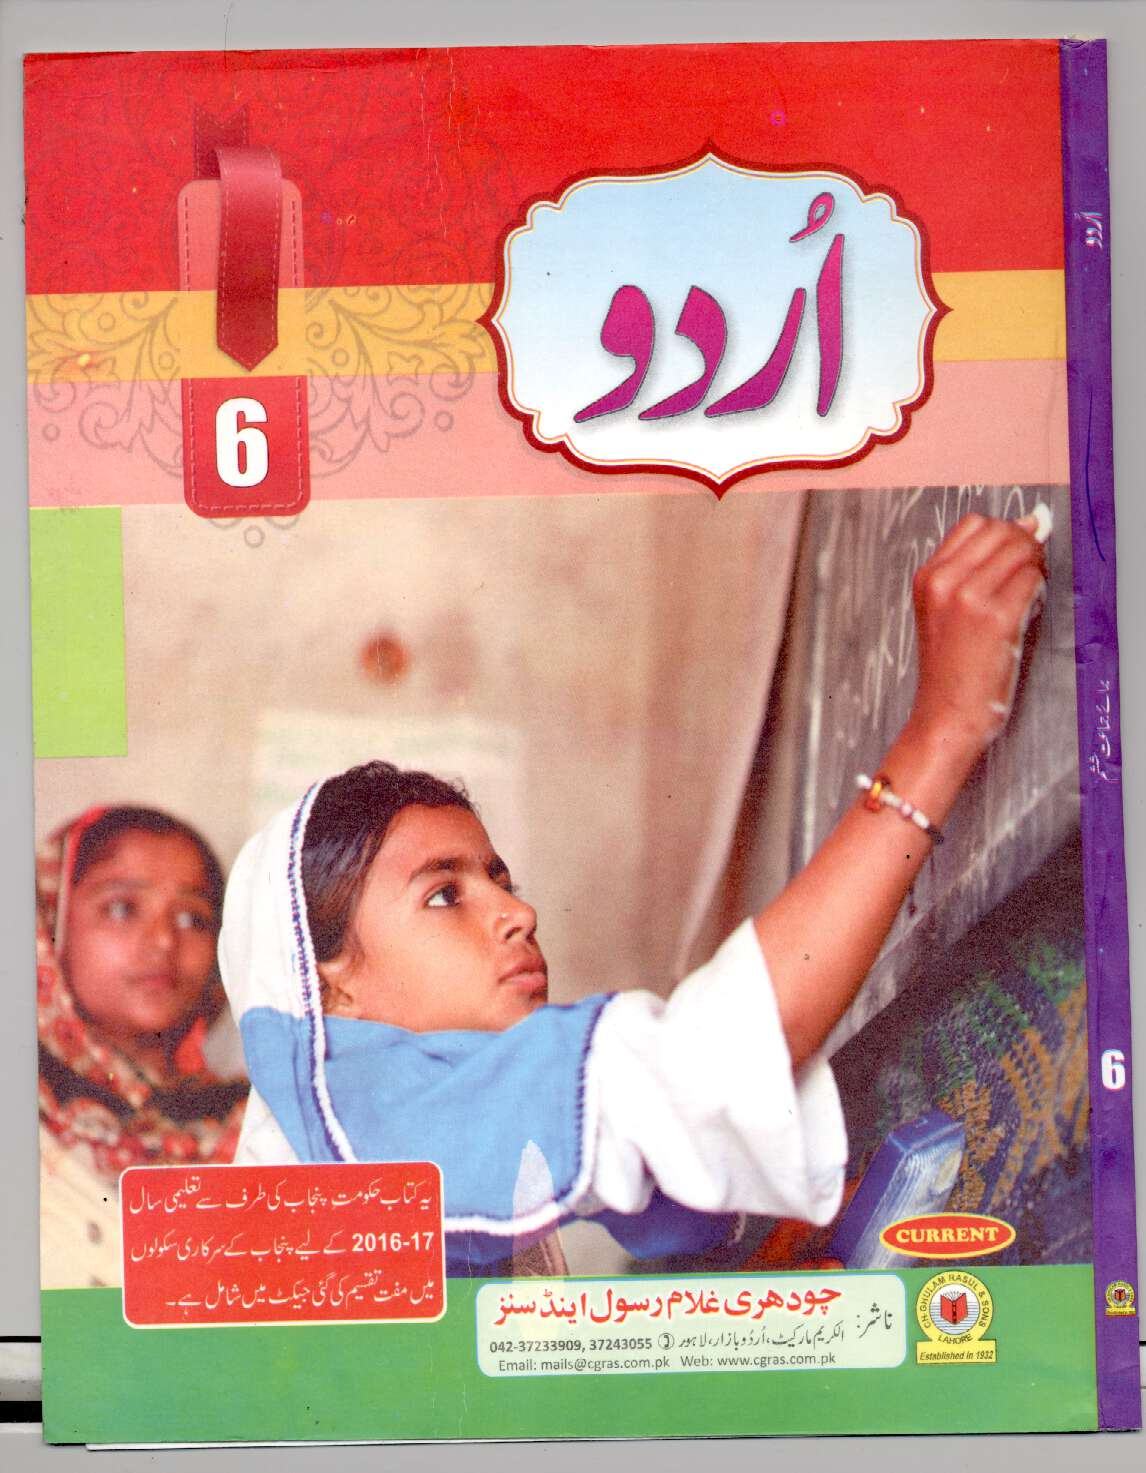 6th Class Urdu Book Free Download In PDF